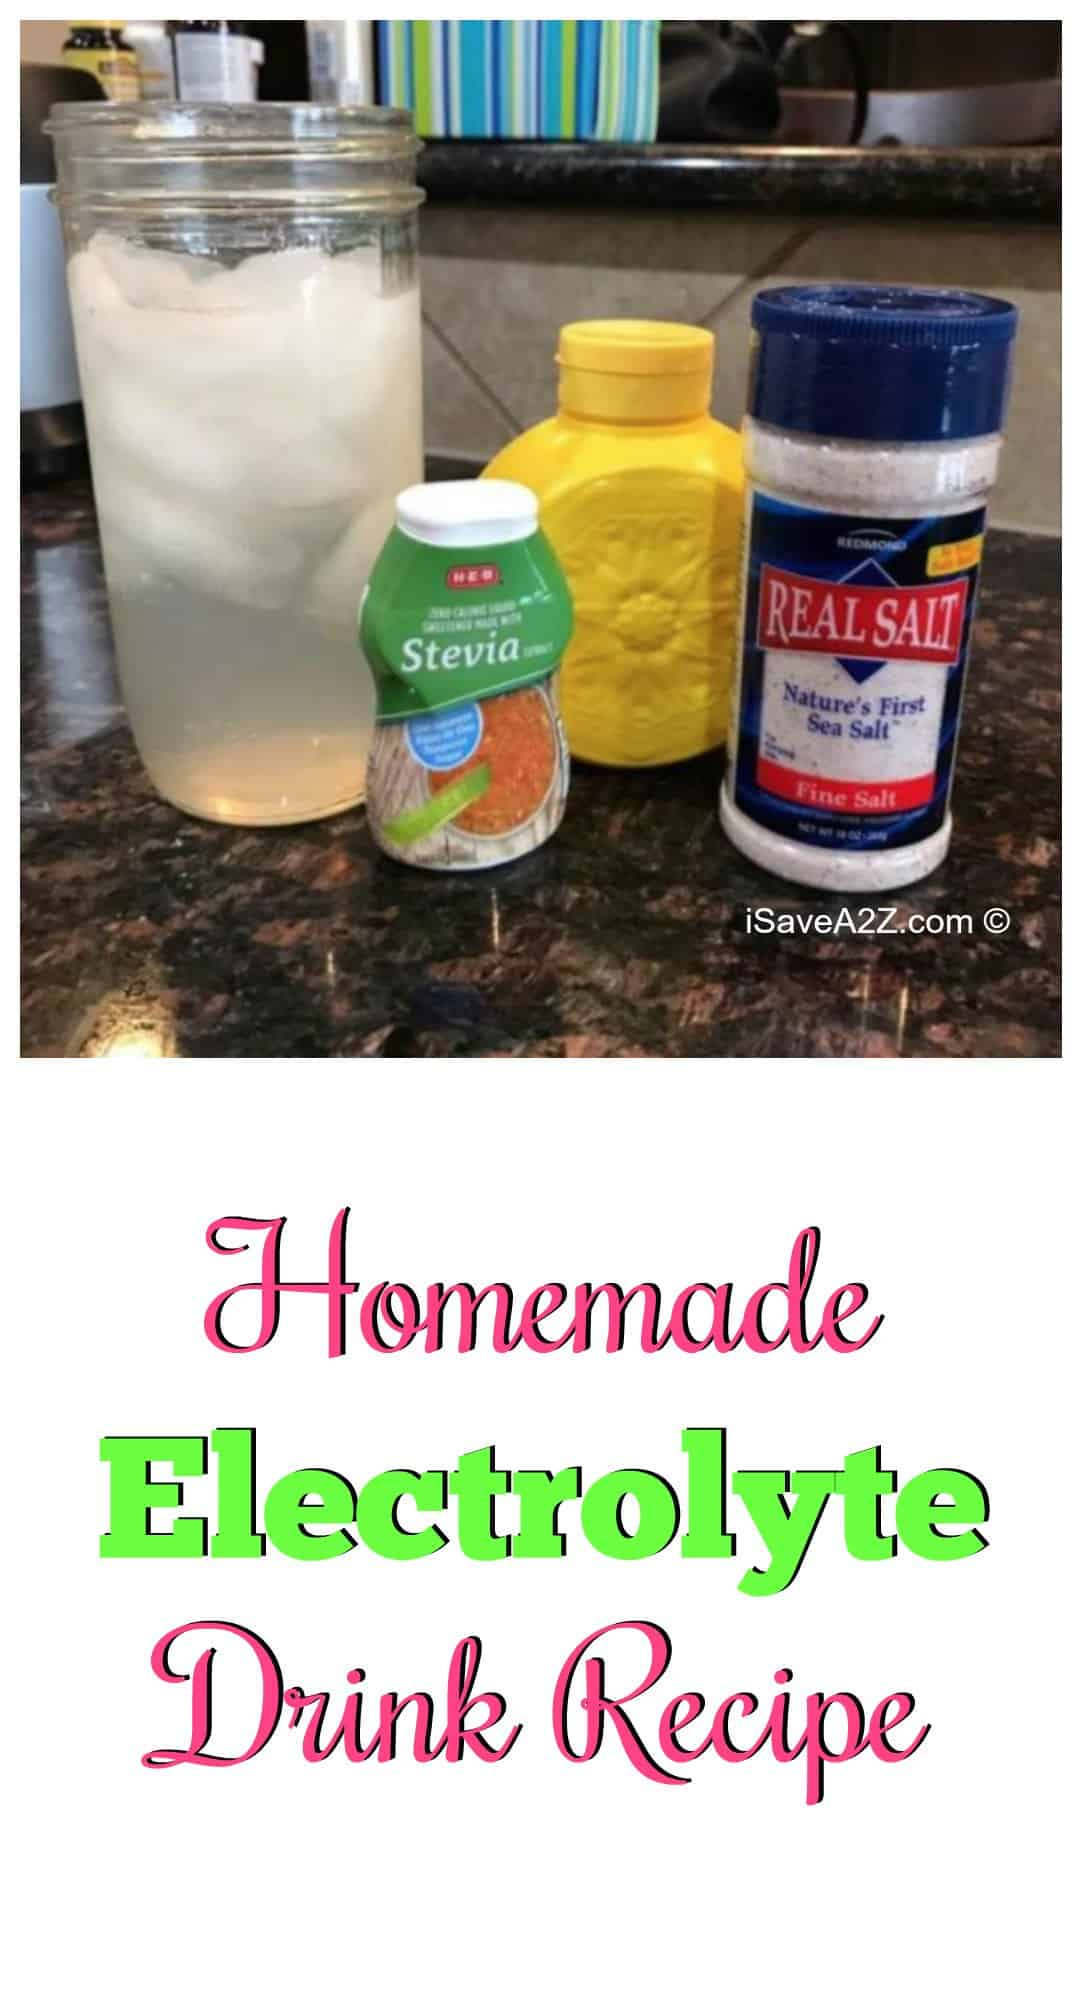 If you are on the keto diet and suffer from headaches, try this homemade electrolyte drink recipe! When I was getting started on the ketogenic diet, it helped me so much!